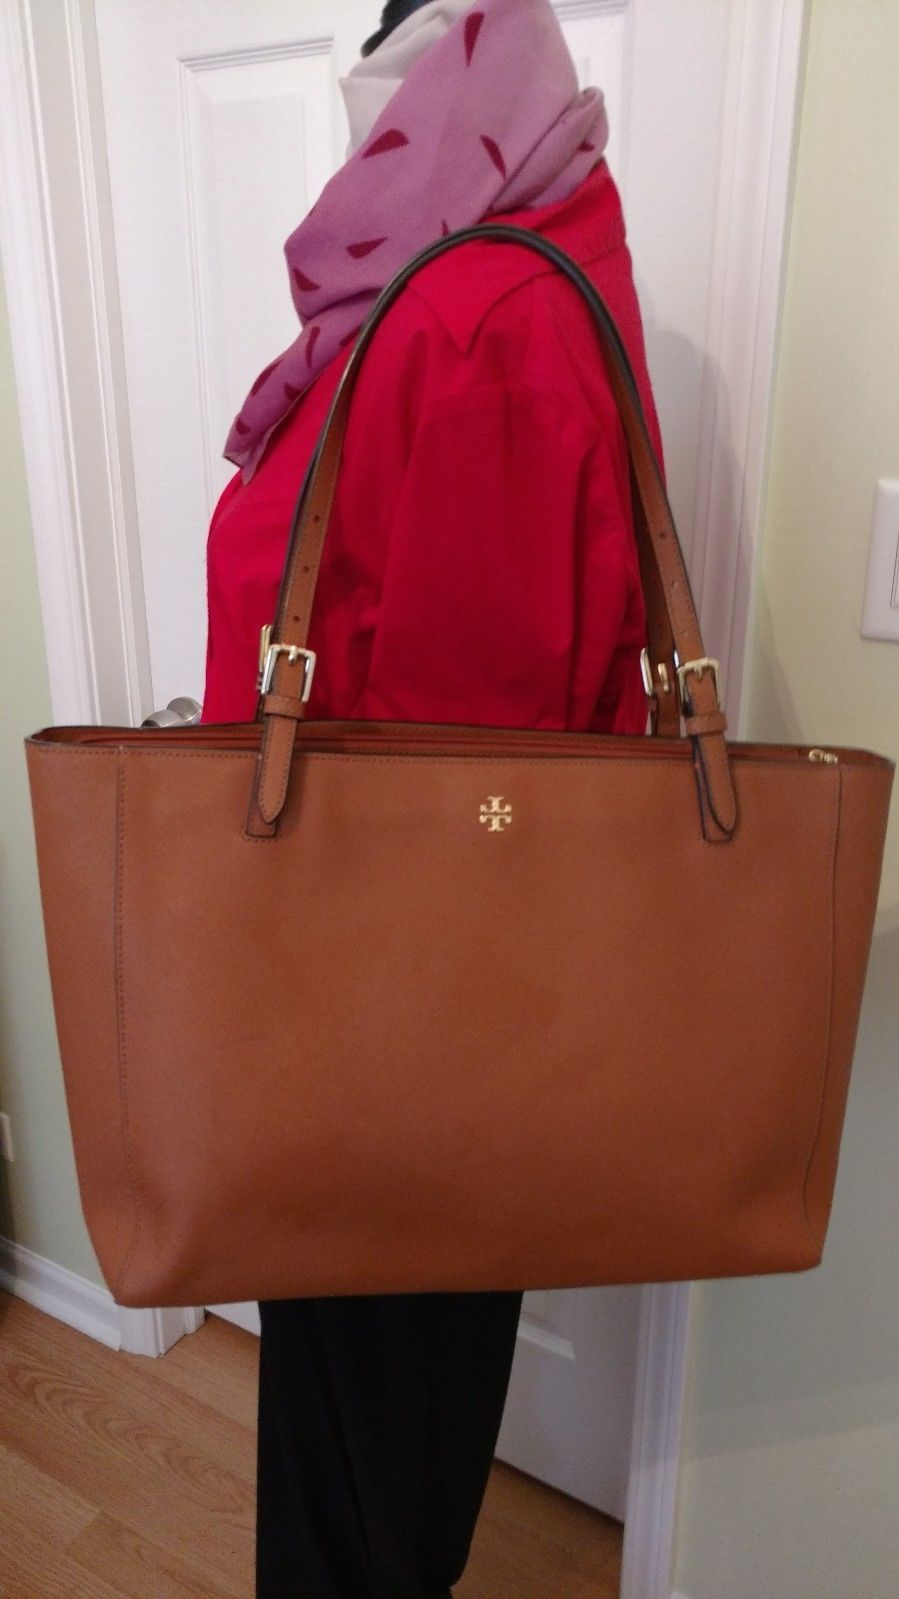 cee3a8d792cb Tory Burch Large York Buckle Tote in Luggage Brown Saffiano Leather MSRP   295